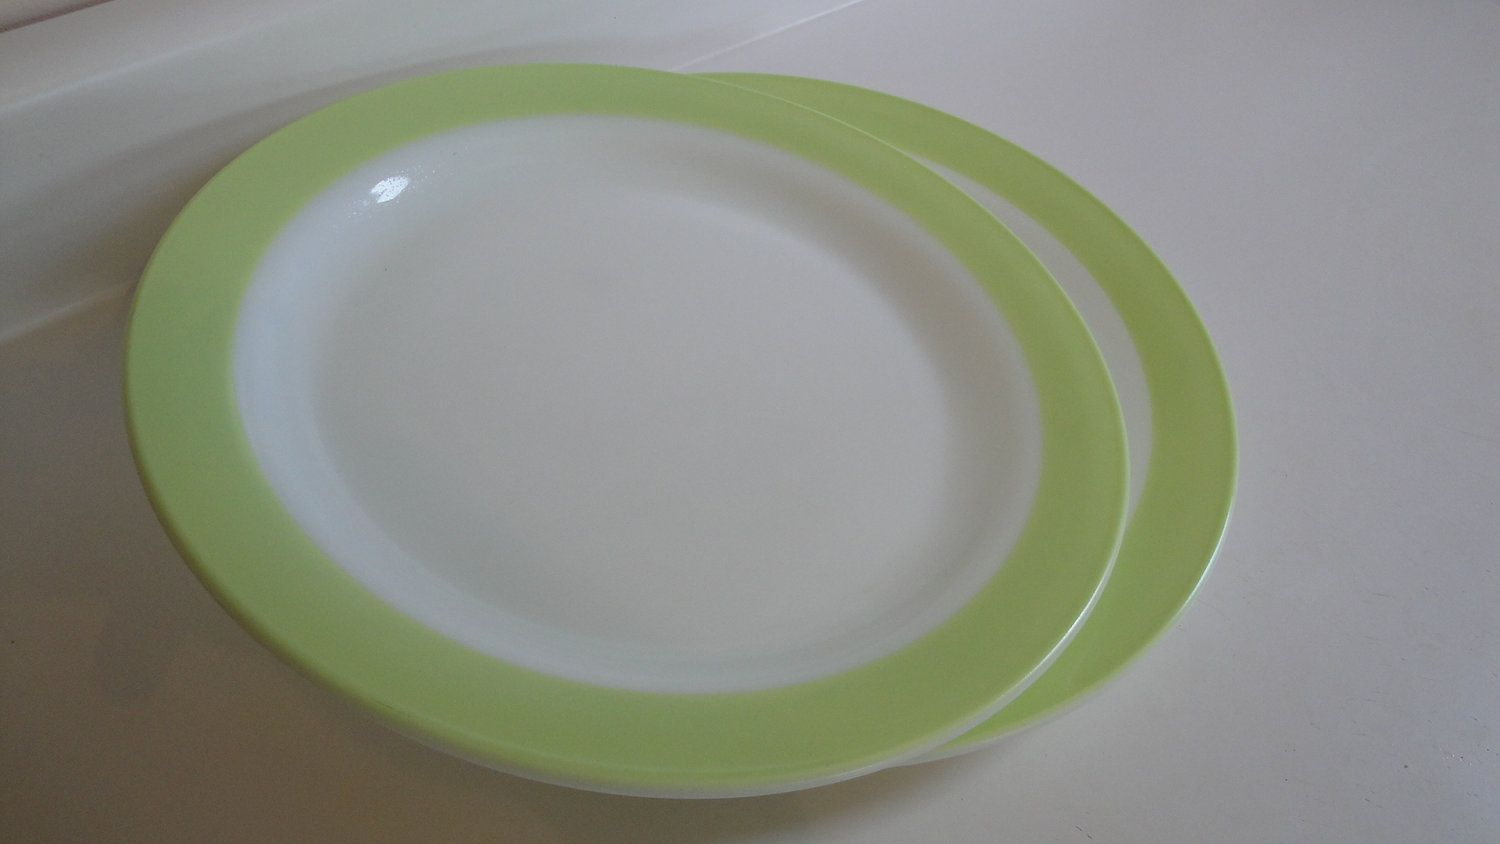 Lime Green Salad Plate 1952 Picked At 150 Main In Granite Falls Nc On 9 9 2011 For 0 50